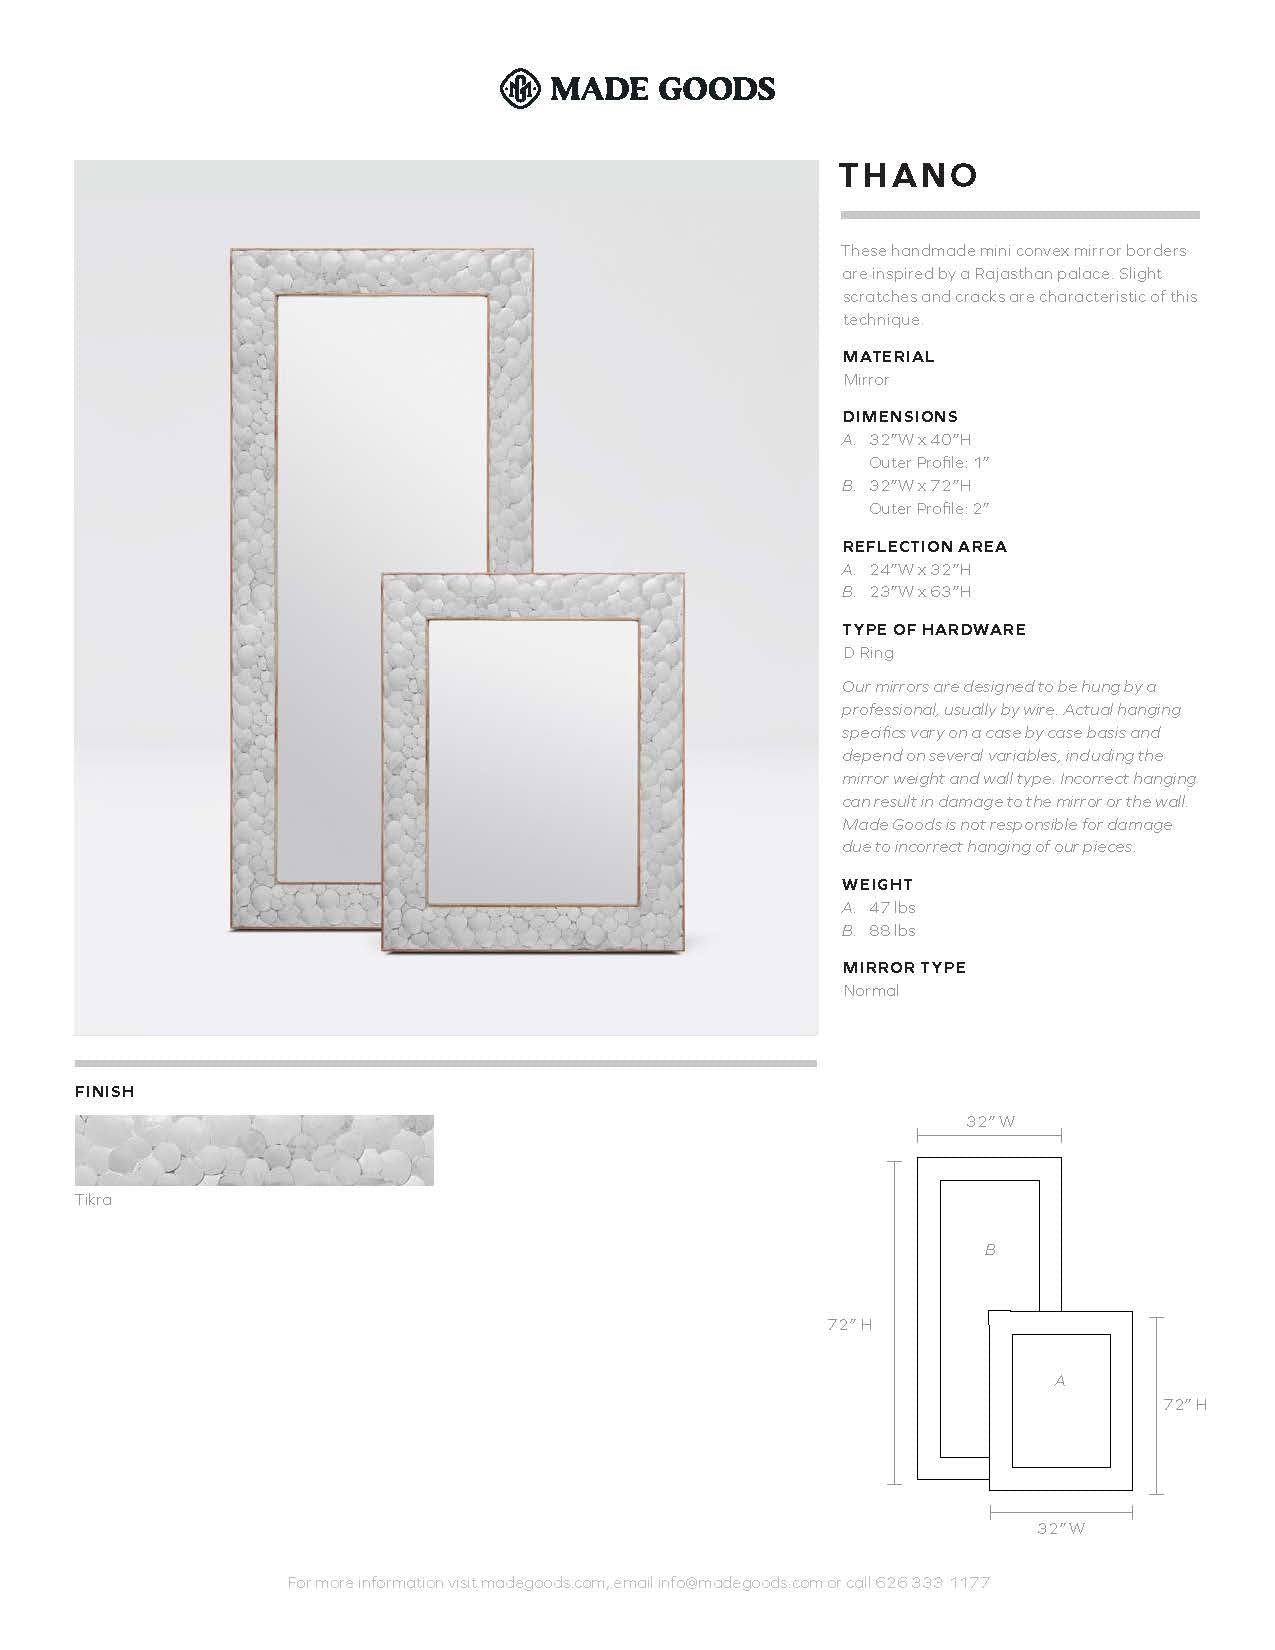 Made Goods Thano Mirror Tearsheet